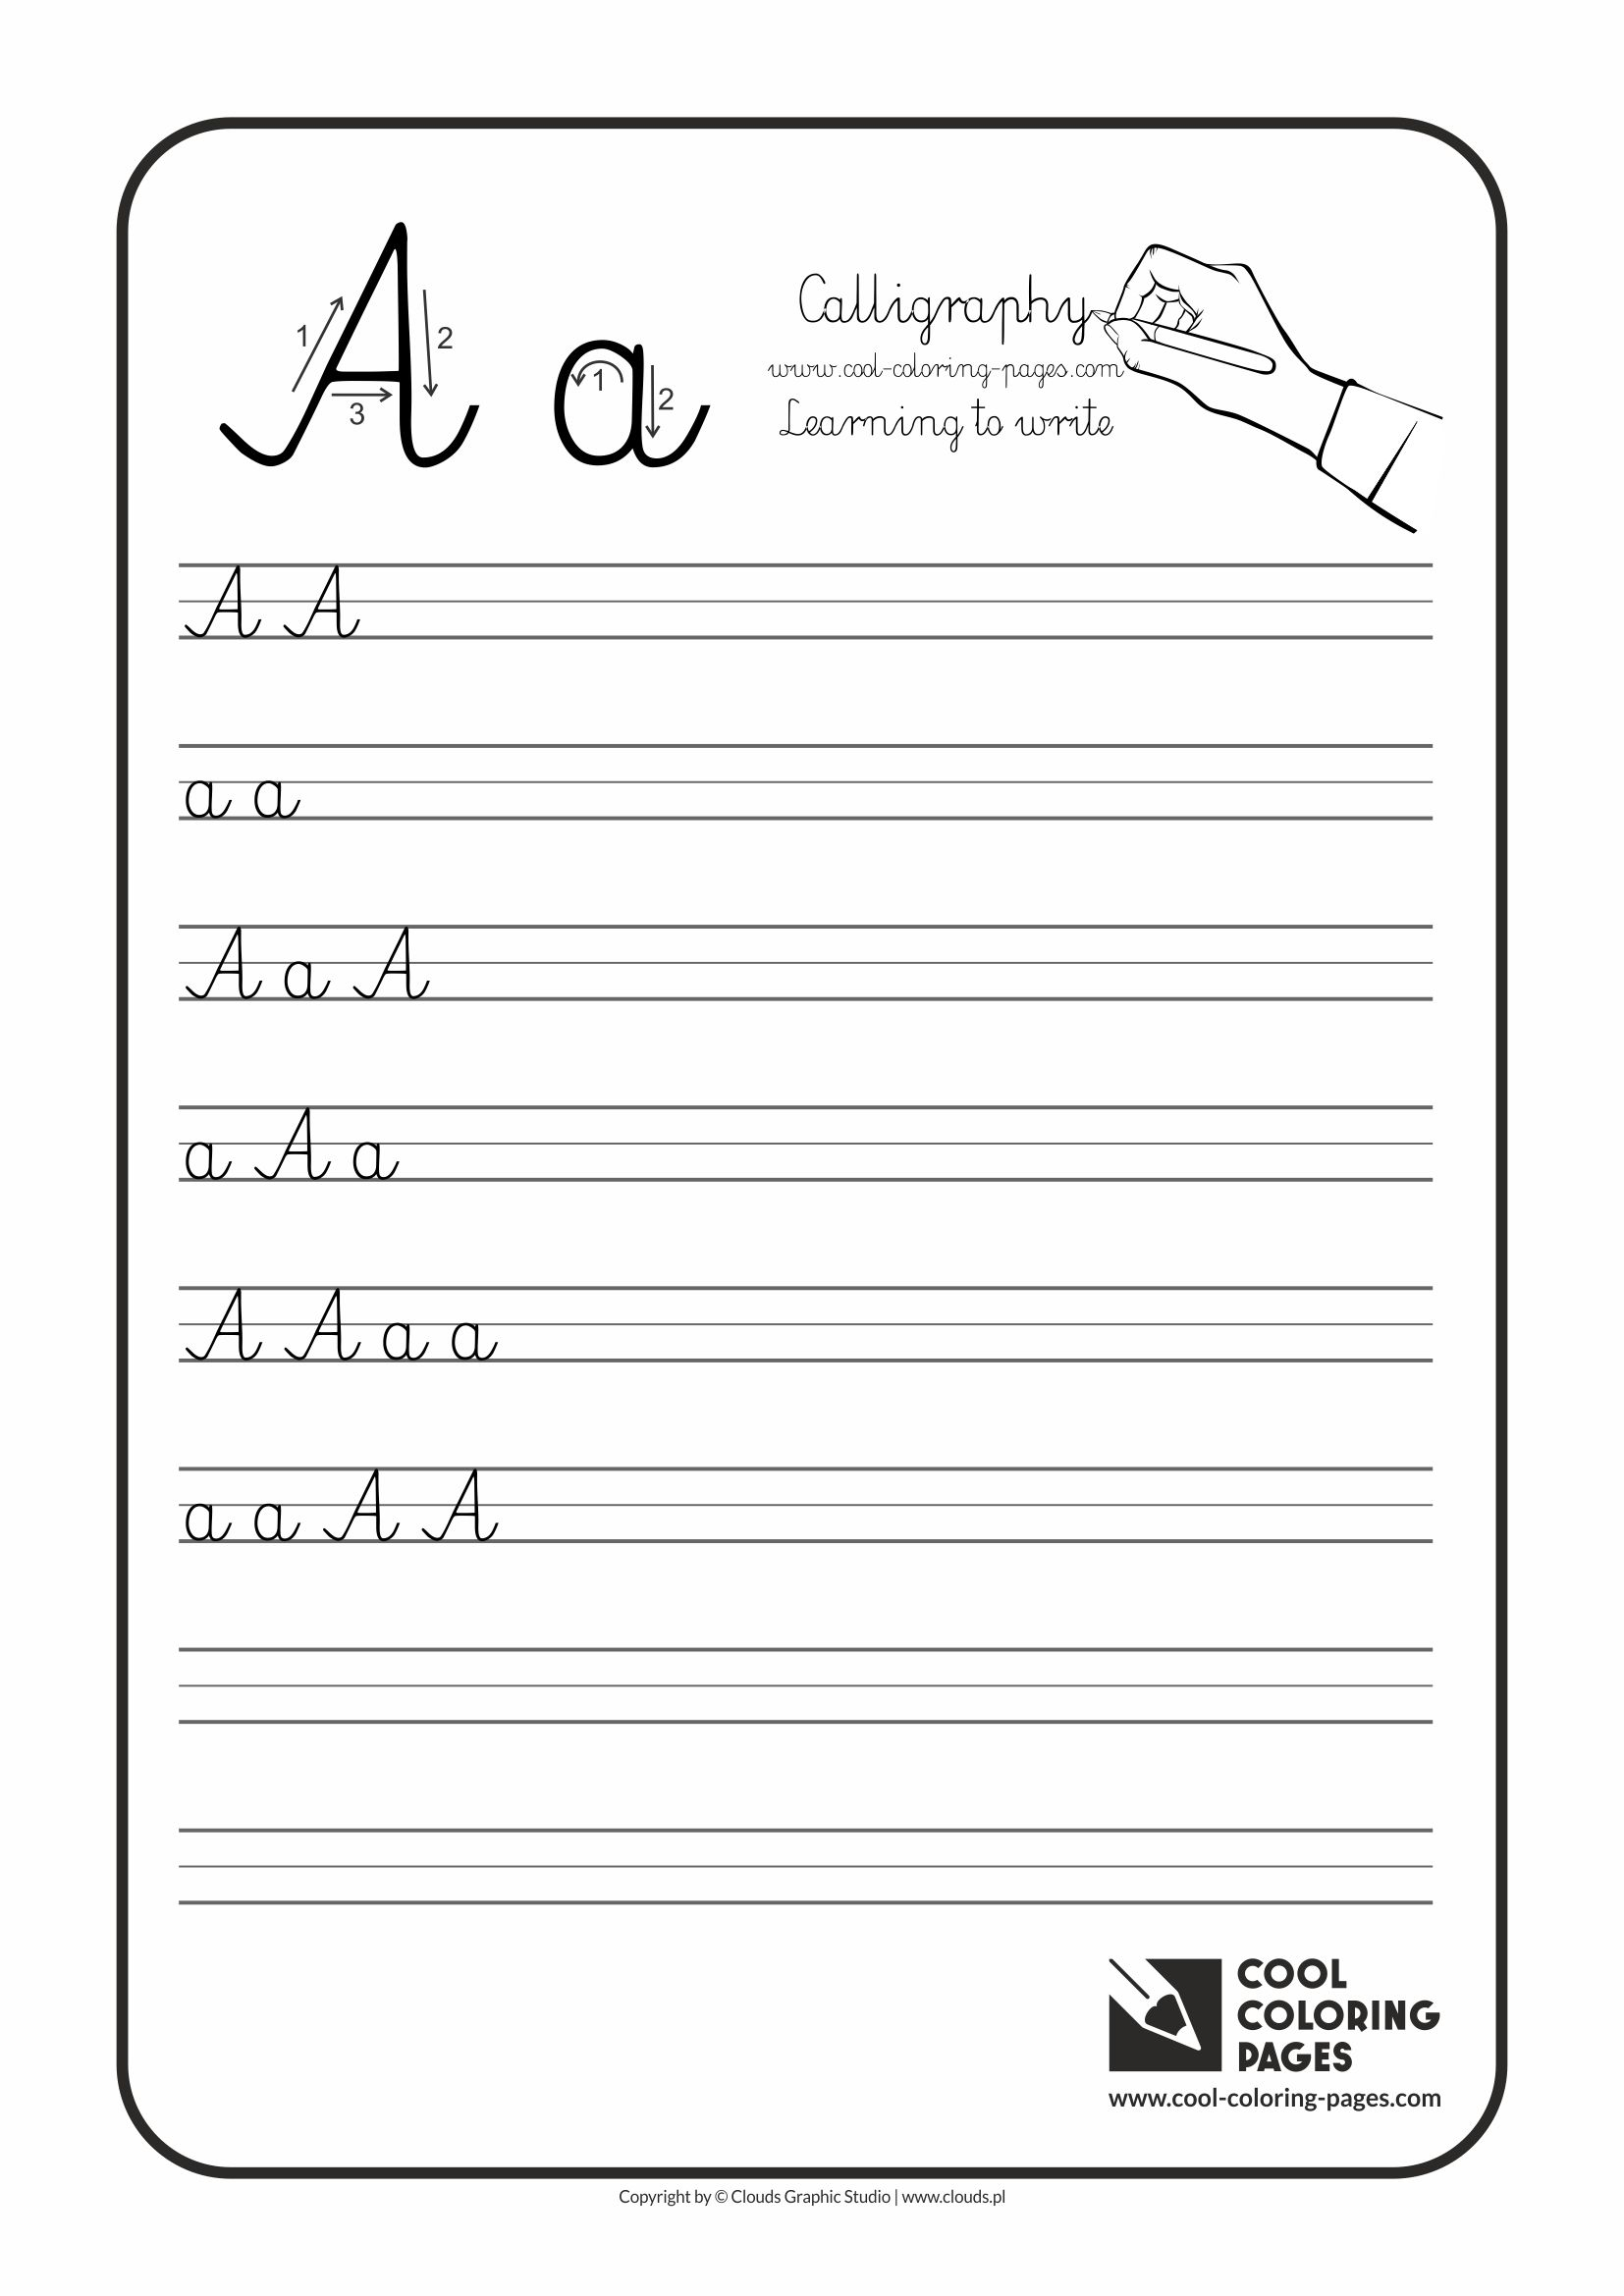 Cool Coloring Pages Letter A